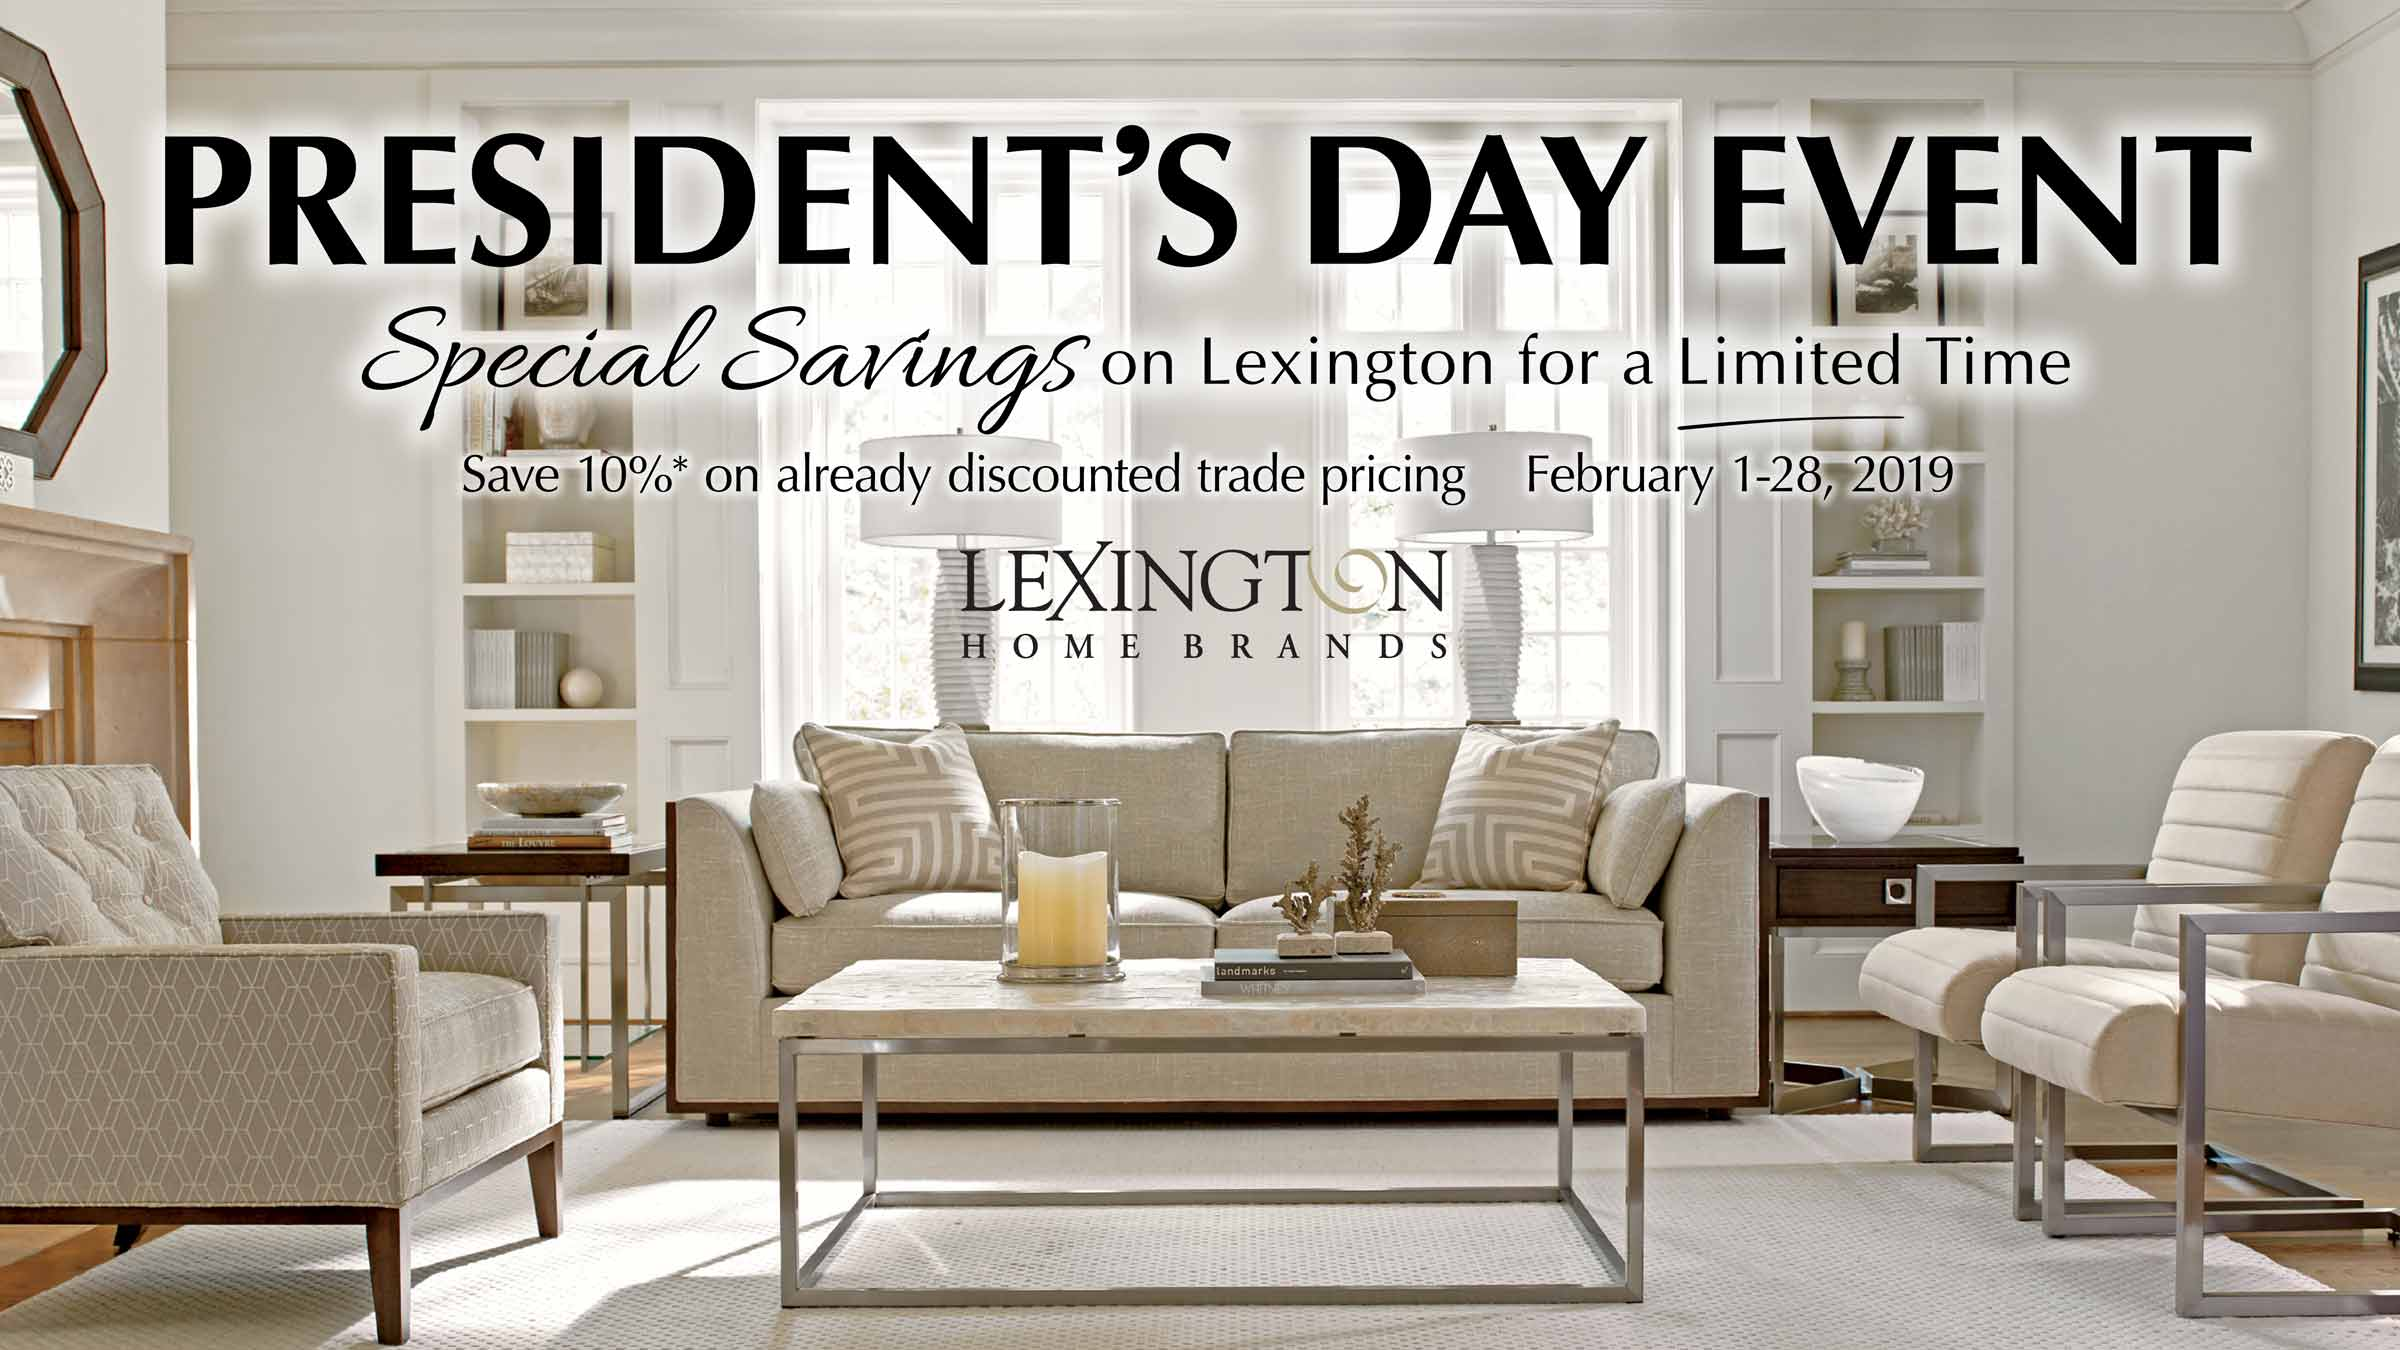 Special savings on Lexington for a limited time at IDS. February 1-28, 2019